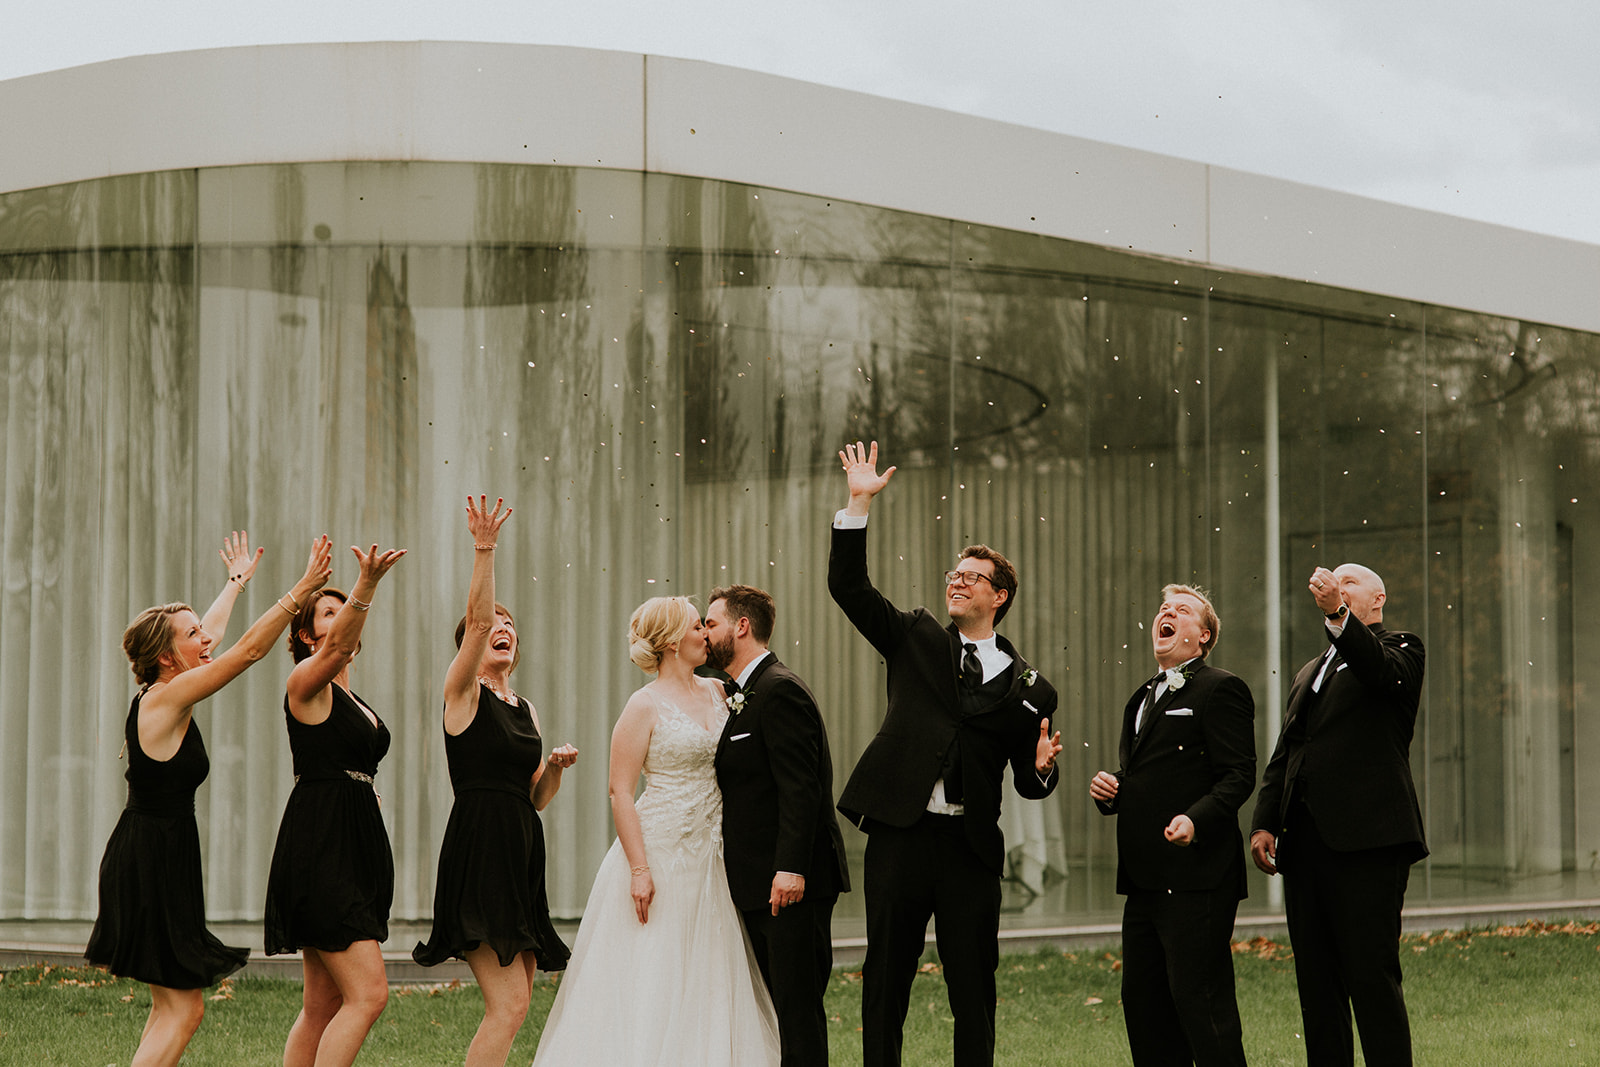 Alison + Kurt - Black bridesmaid dresses, a venue full of charm and history, and a dynamic duo are just a few of our favorite things about this wedding.